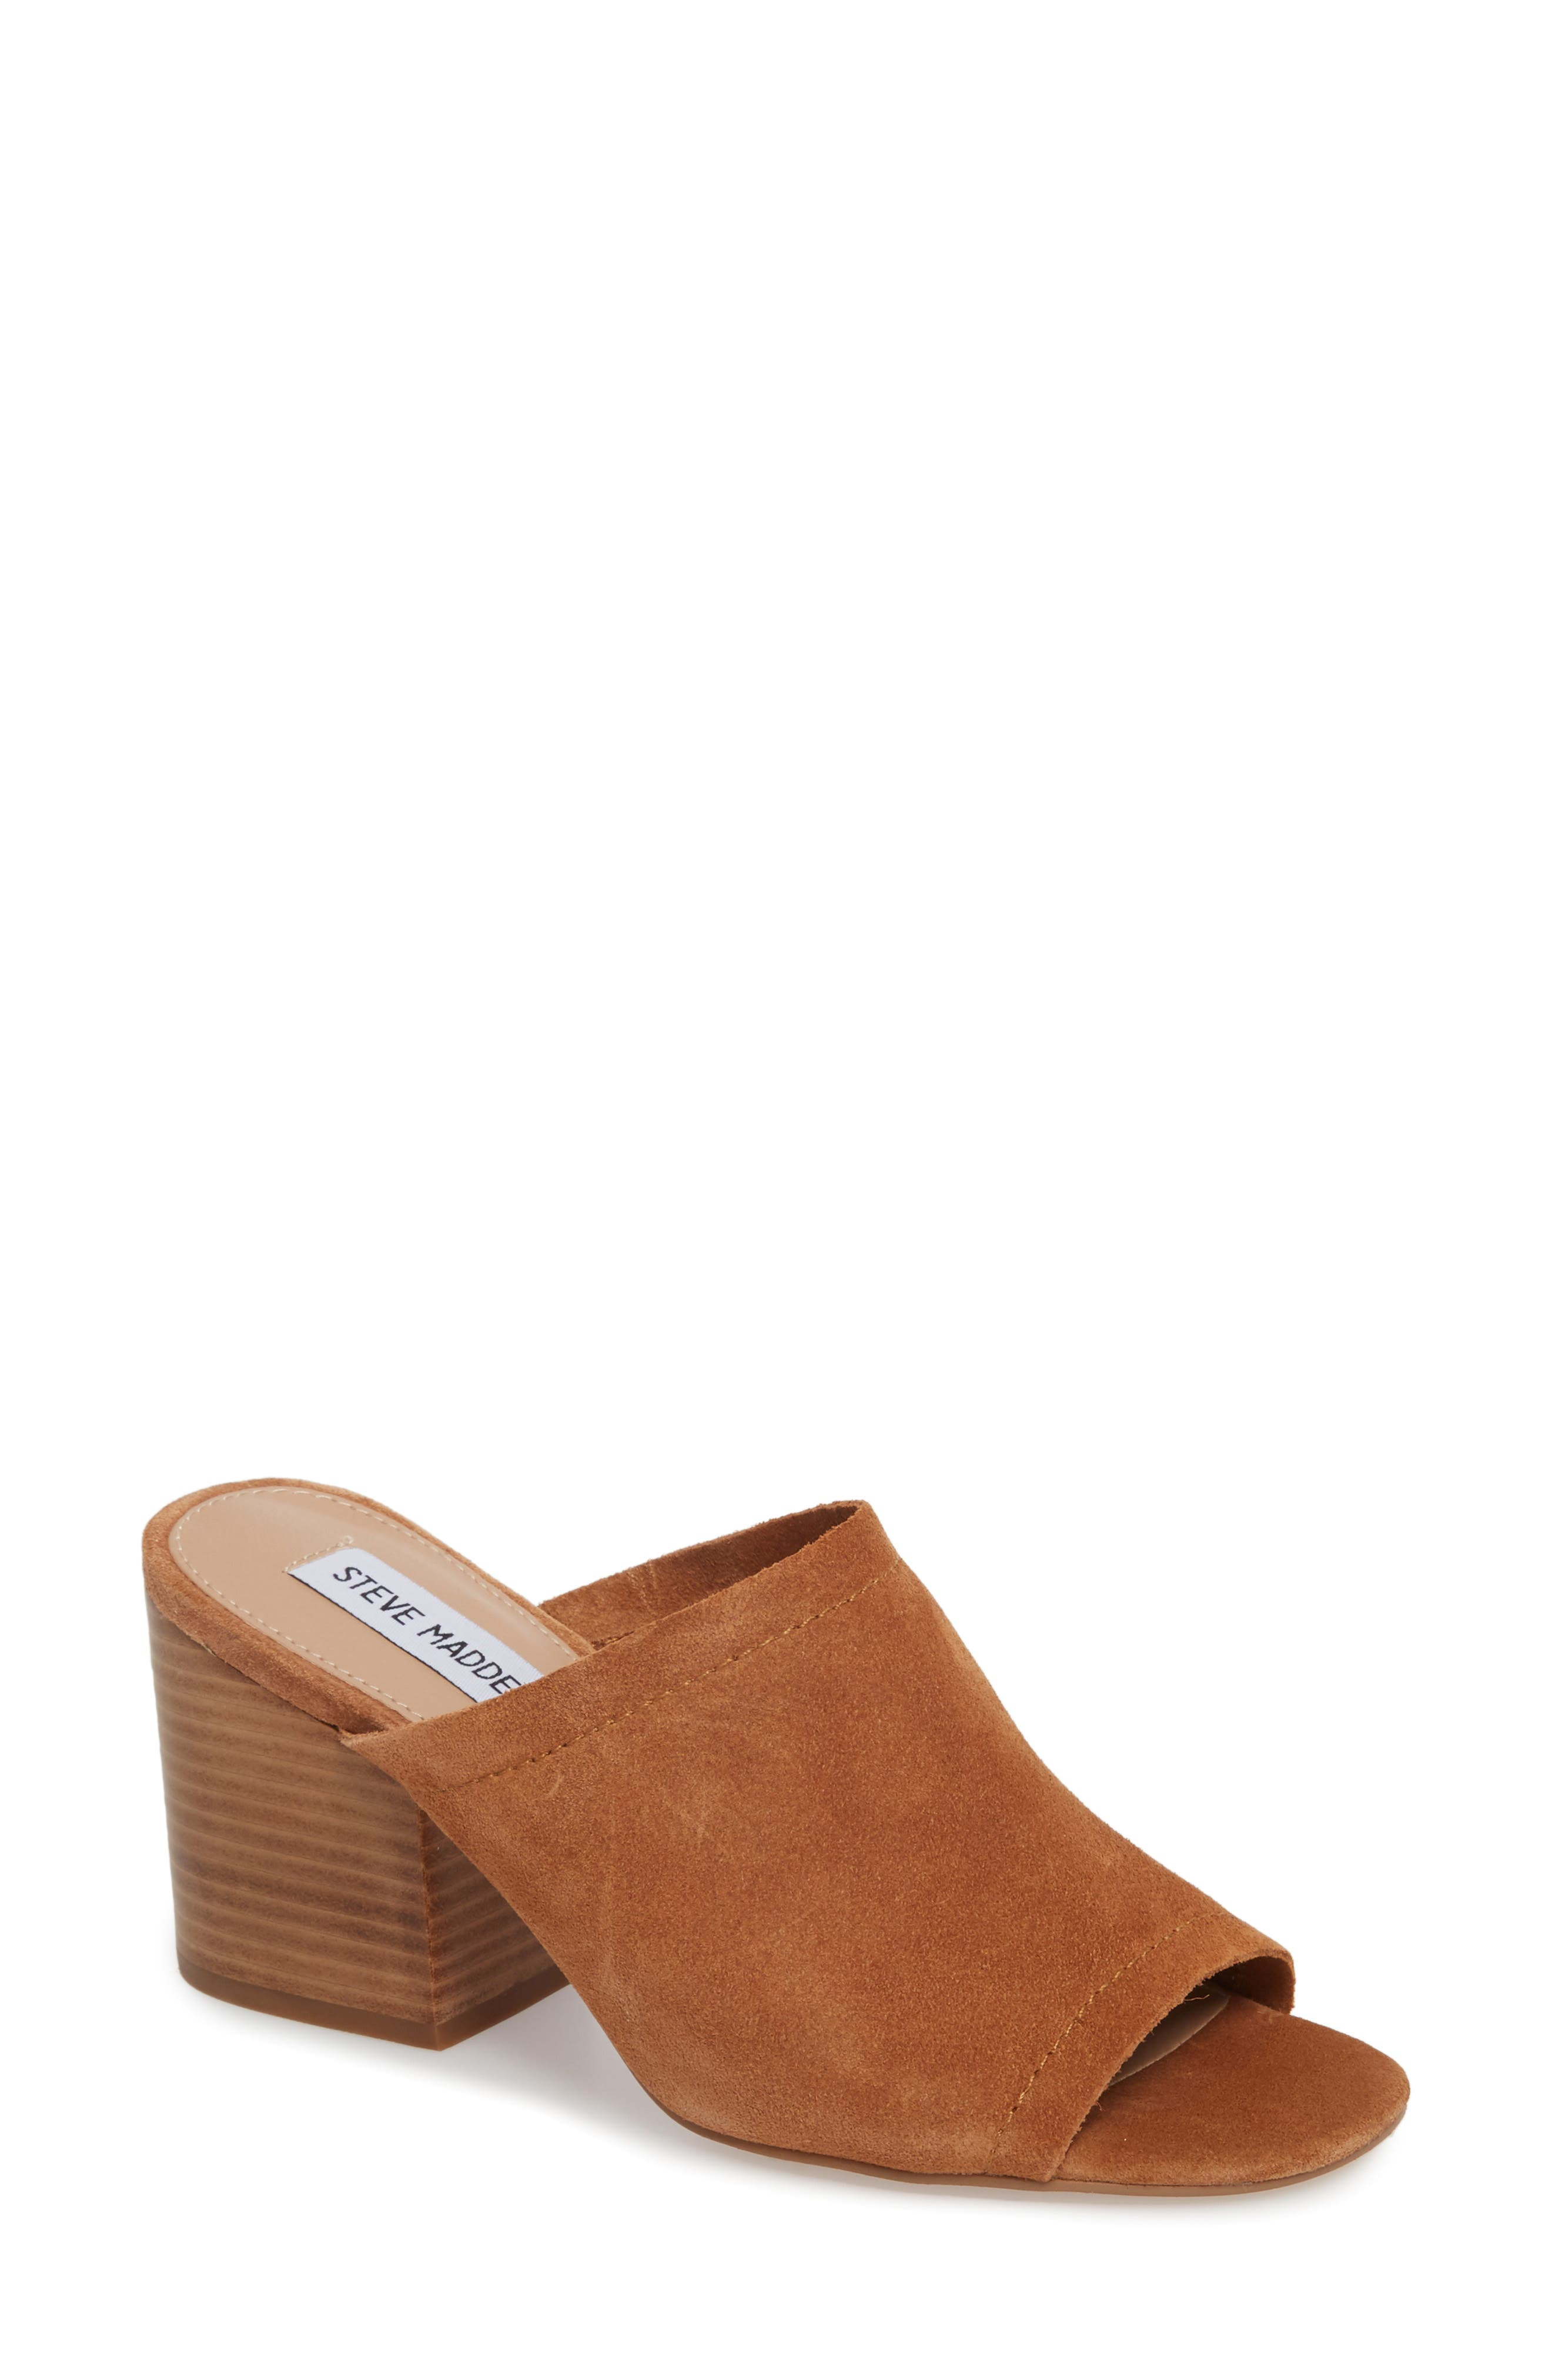 Doran Mule Sandal,                             Main thumbnail 1, color,                             CHESTNUT SUEDE